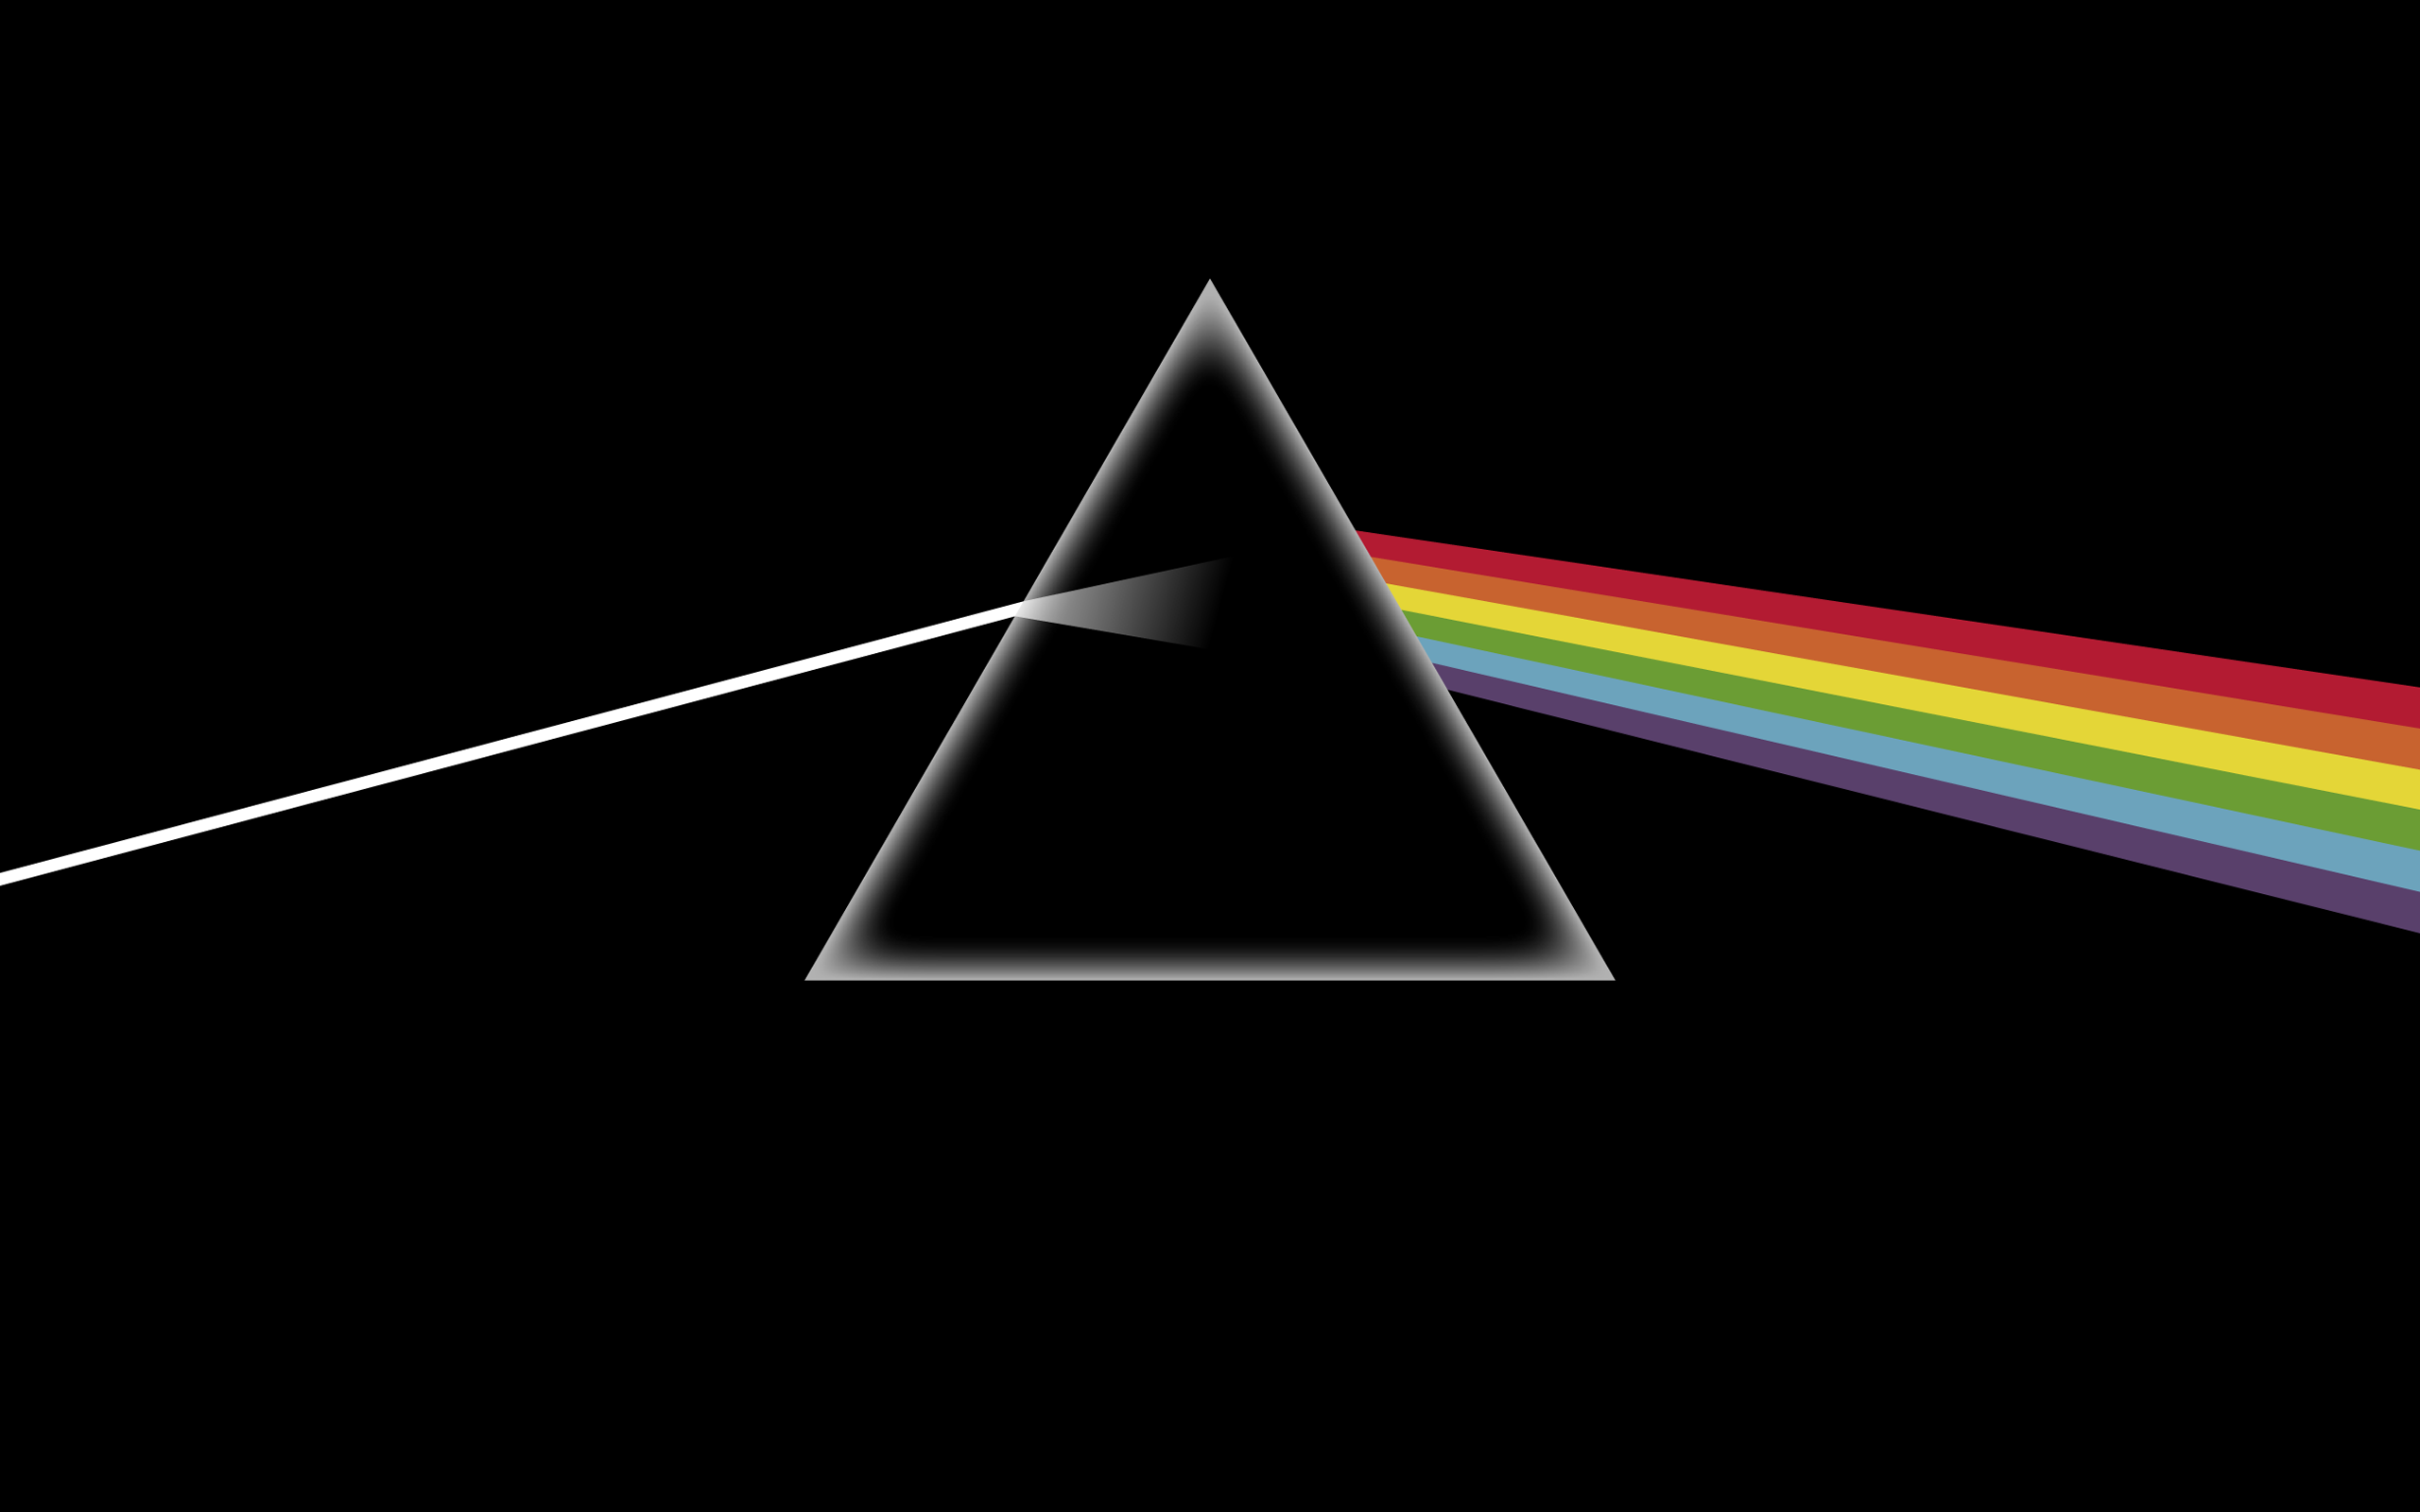 Dark side of the moon wallpaper